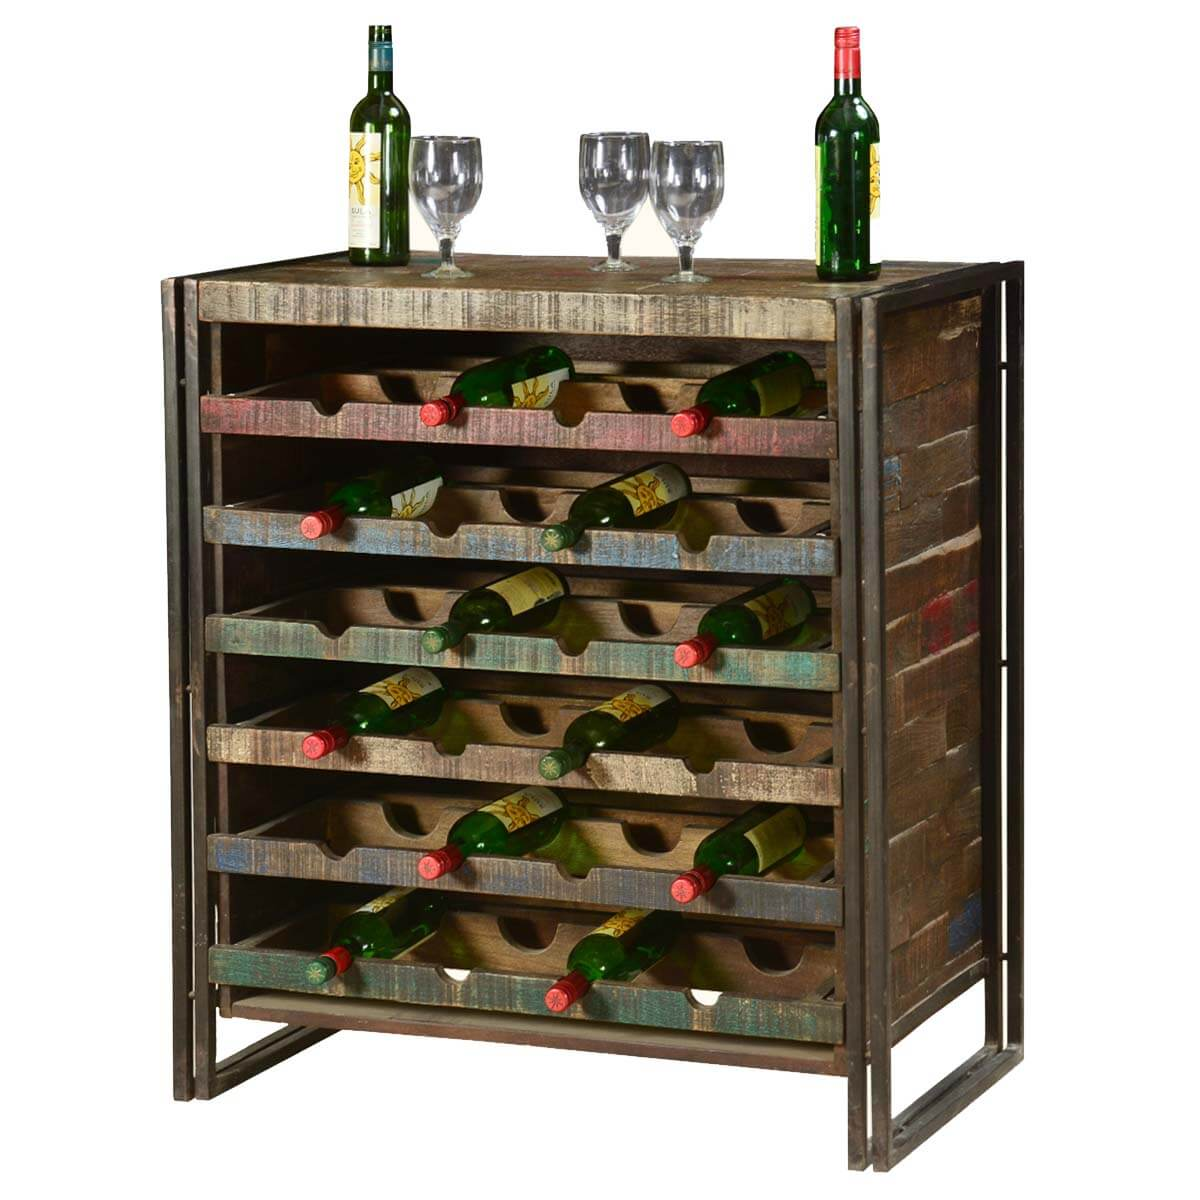 Rustic Industrial Wooden Liquor Wine Storage Rack for 24  : 5769 from www.sierralivingconcepts.com size 1200 x 1200 jpeg 143kB